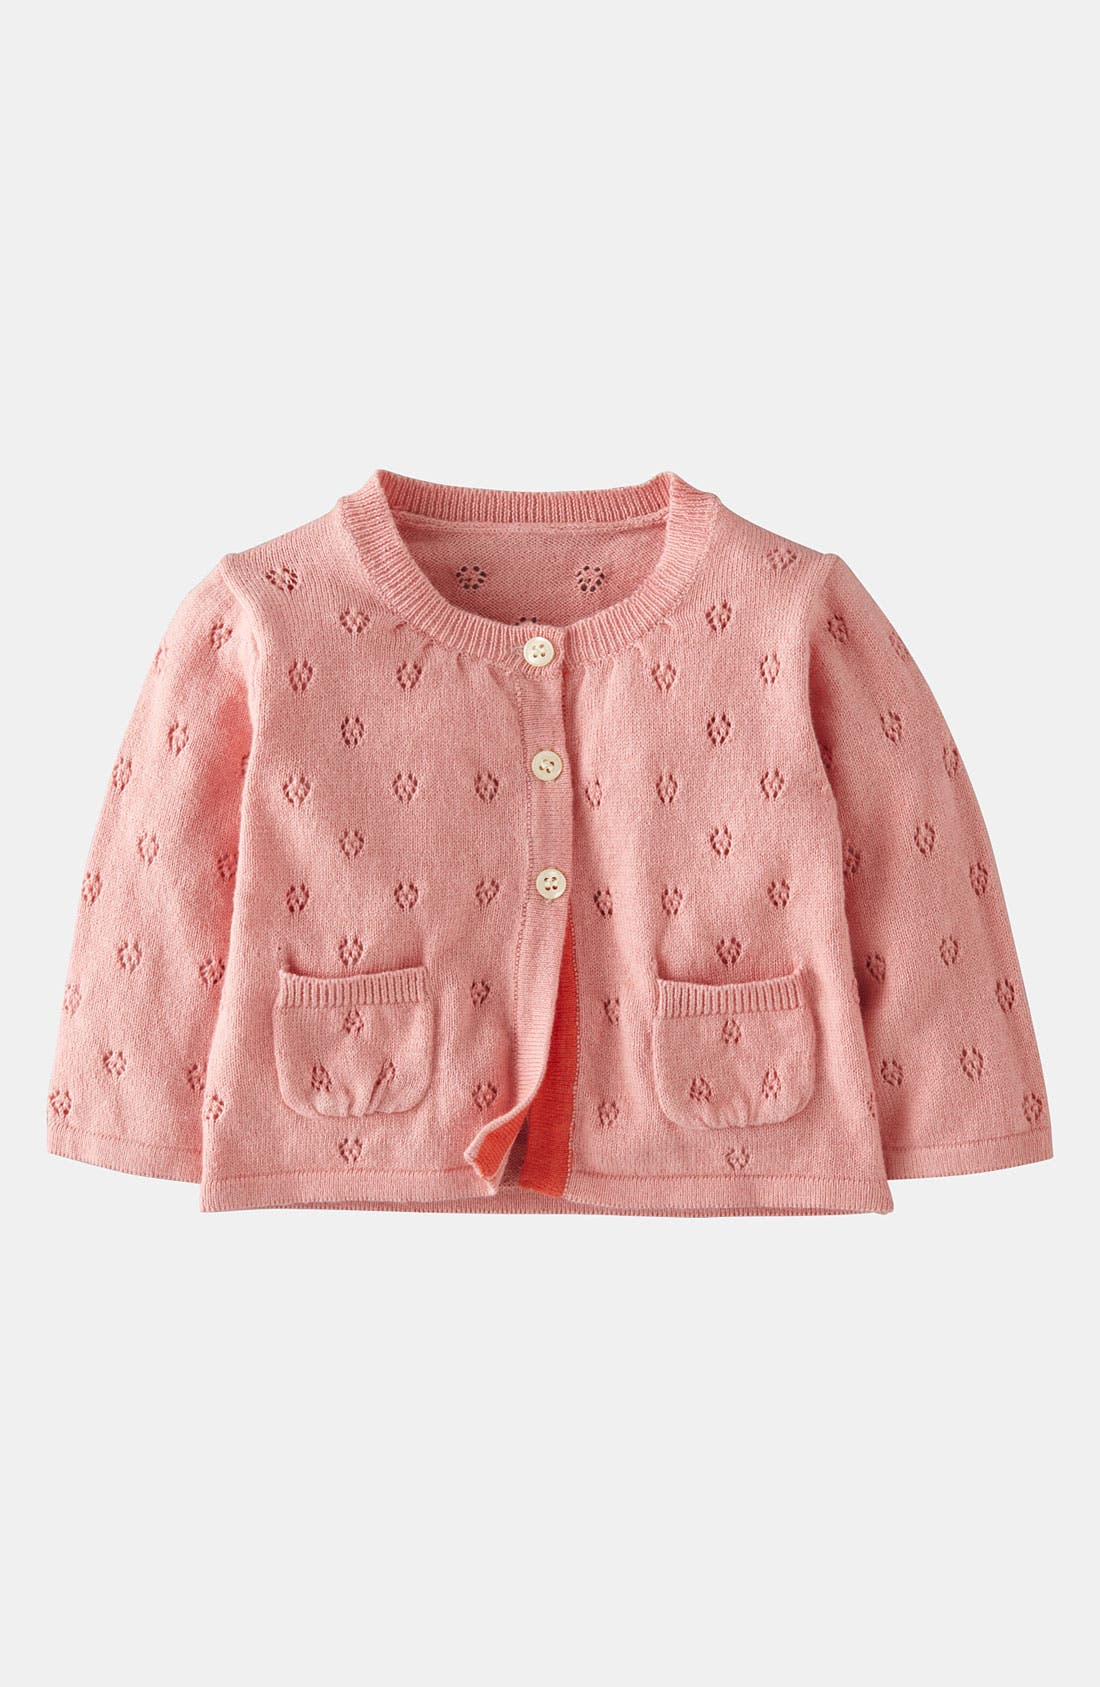 Alternate Image 1 Selected - Mini Boden Pointelle Cardigan (Baby)